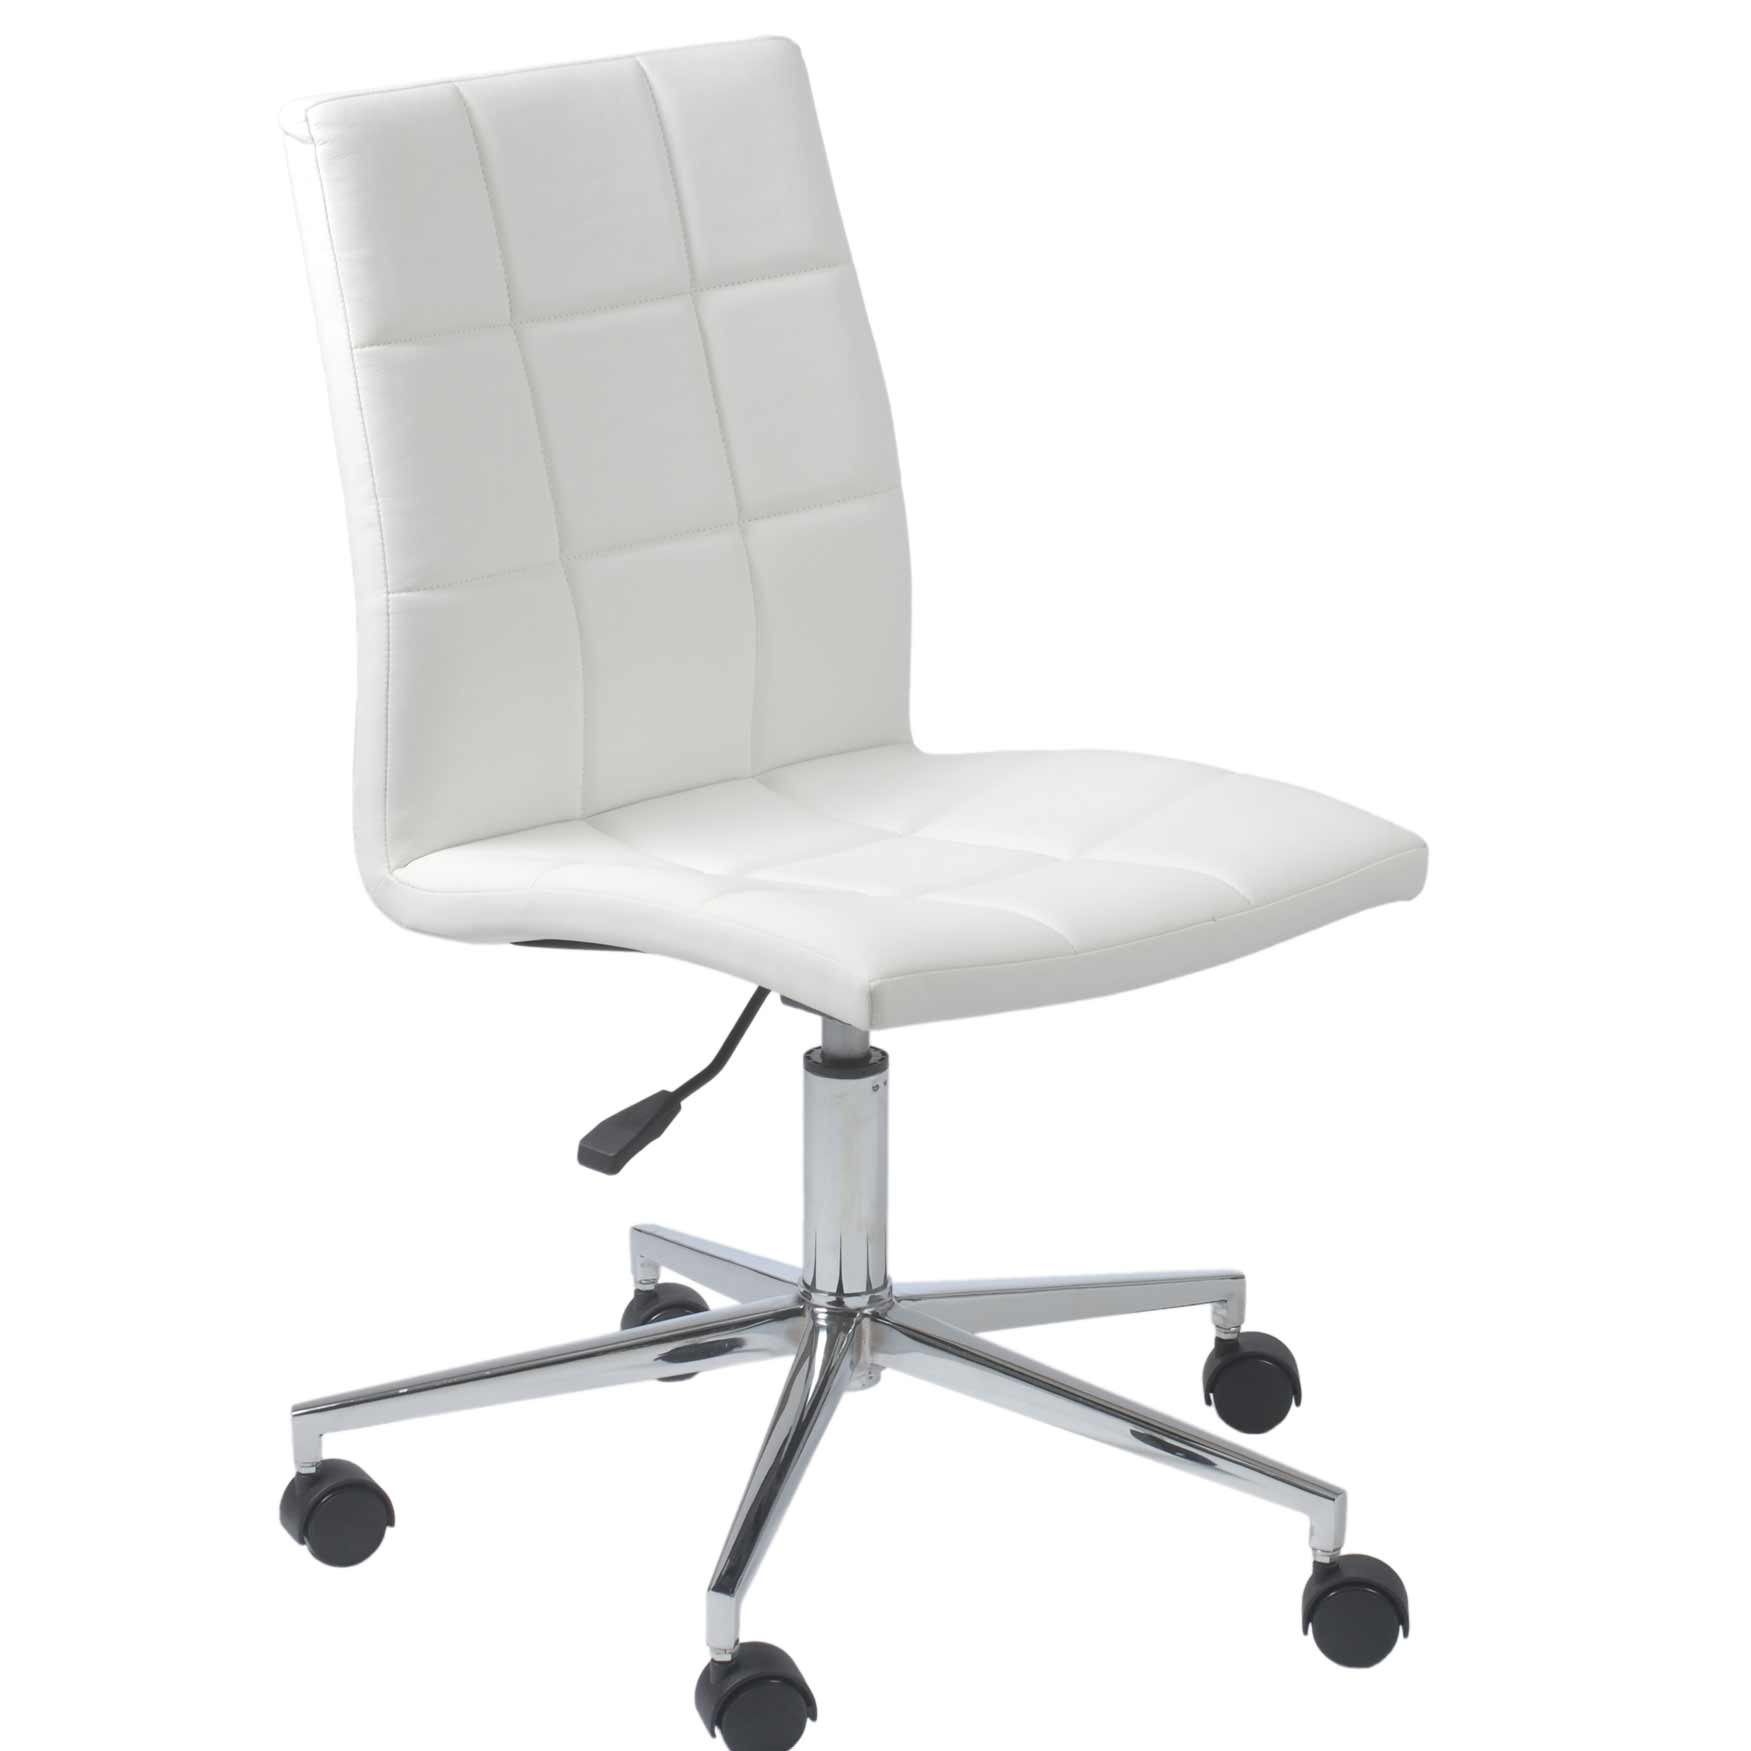 Armless Task Chairs for Home fice